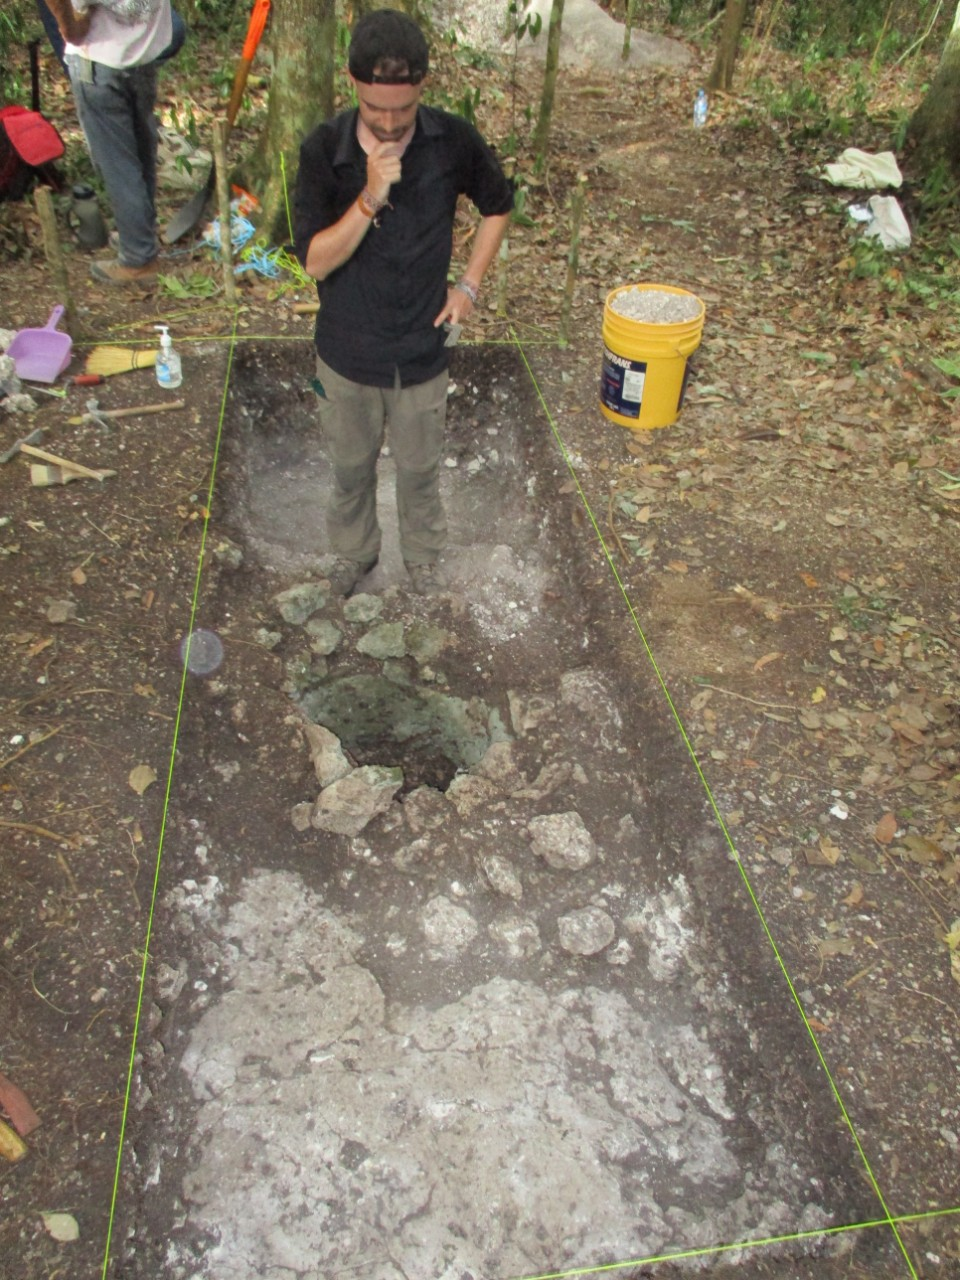 UC student Thomas Ruhl works at an excavation of an ancient storage pit in Mexico's Yucatan Peninsula. (Image: Nicholas Dunning)